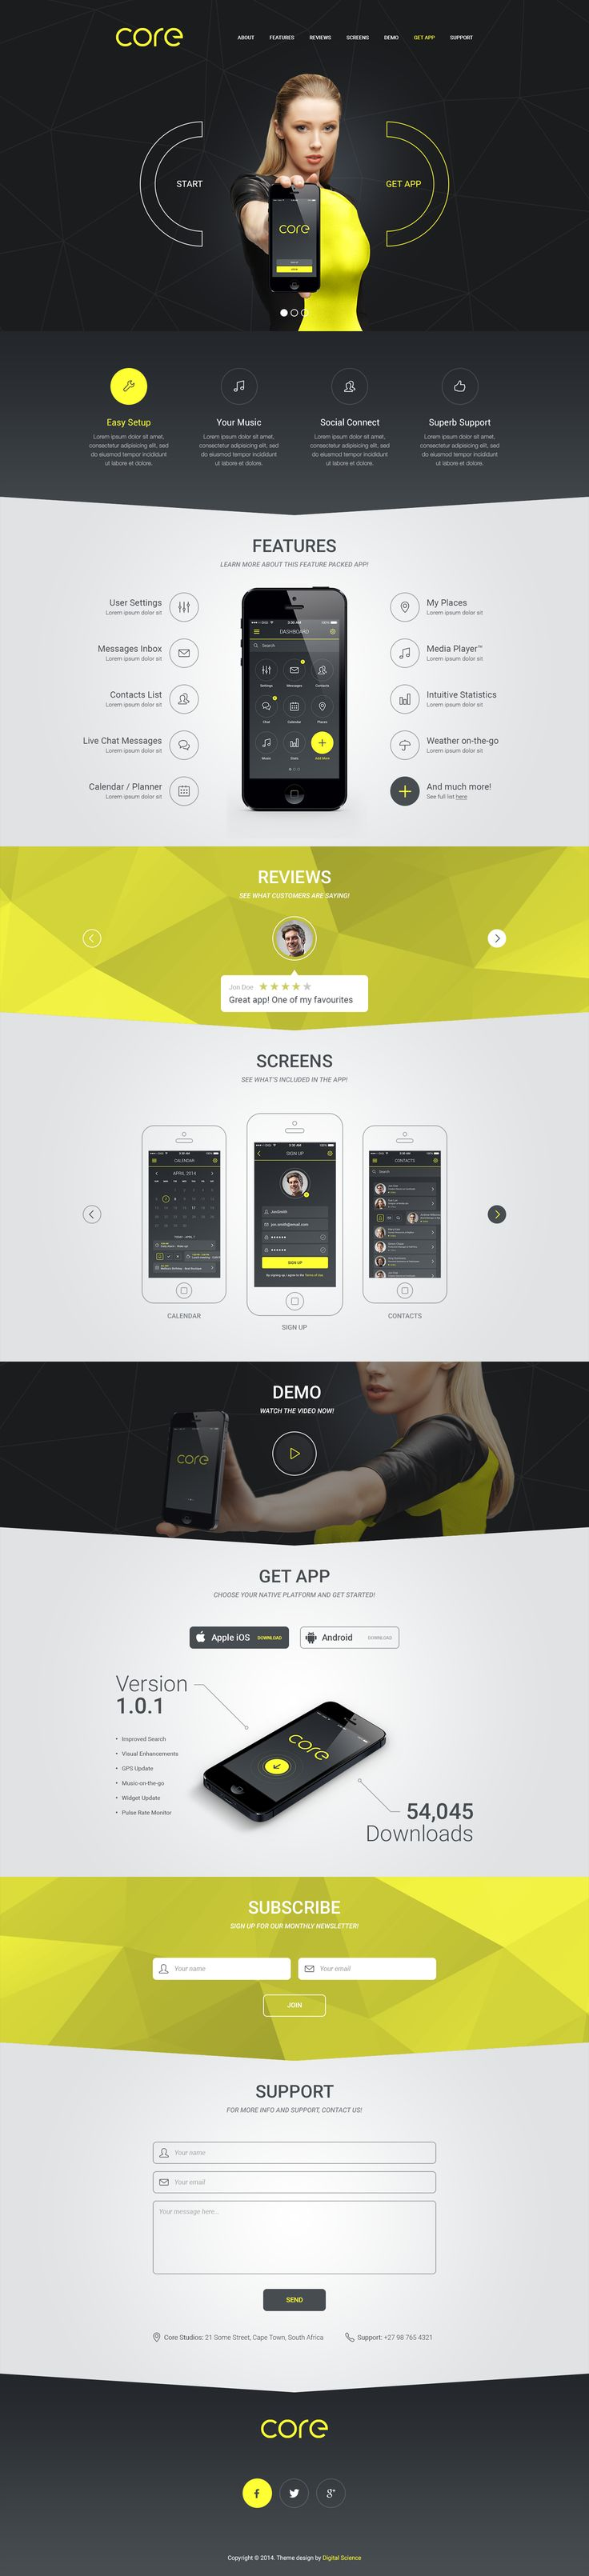 PSD available on ThemeForesthttp://themeforest.net/item/core-mobile-app-landing-psd-theme/8504932